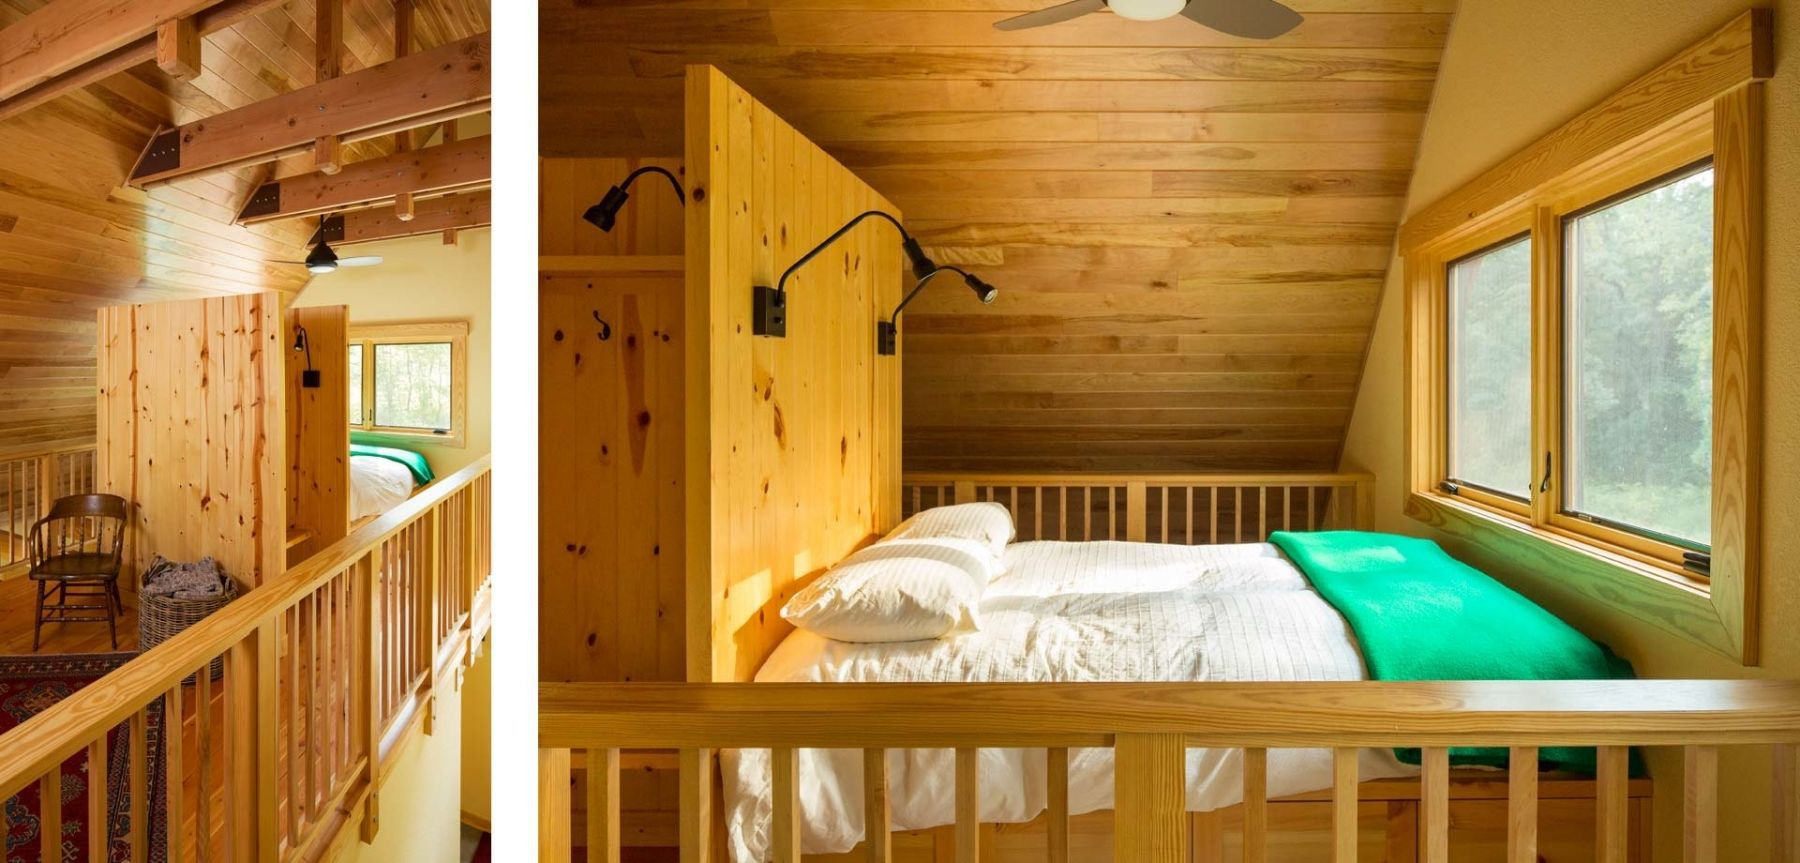 Wooden fishing cabin bright bedroom